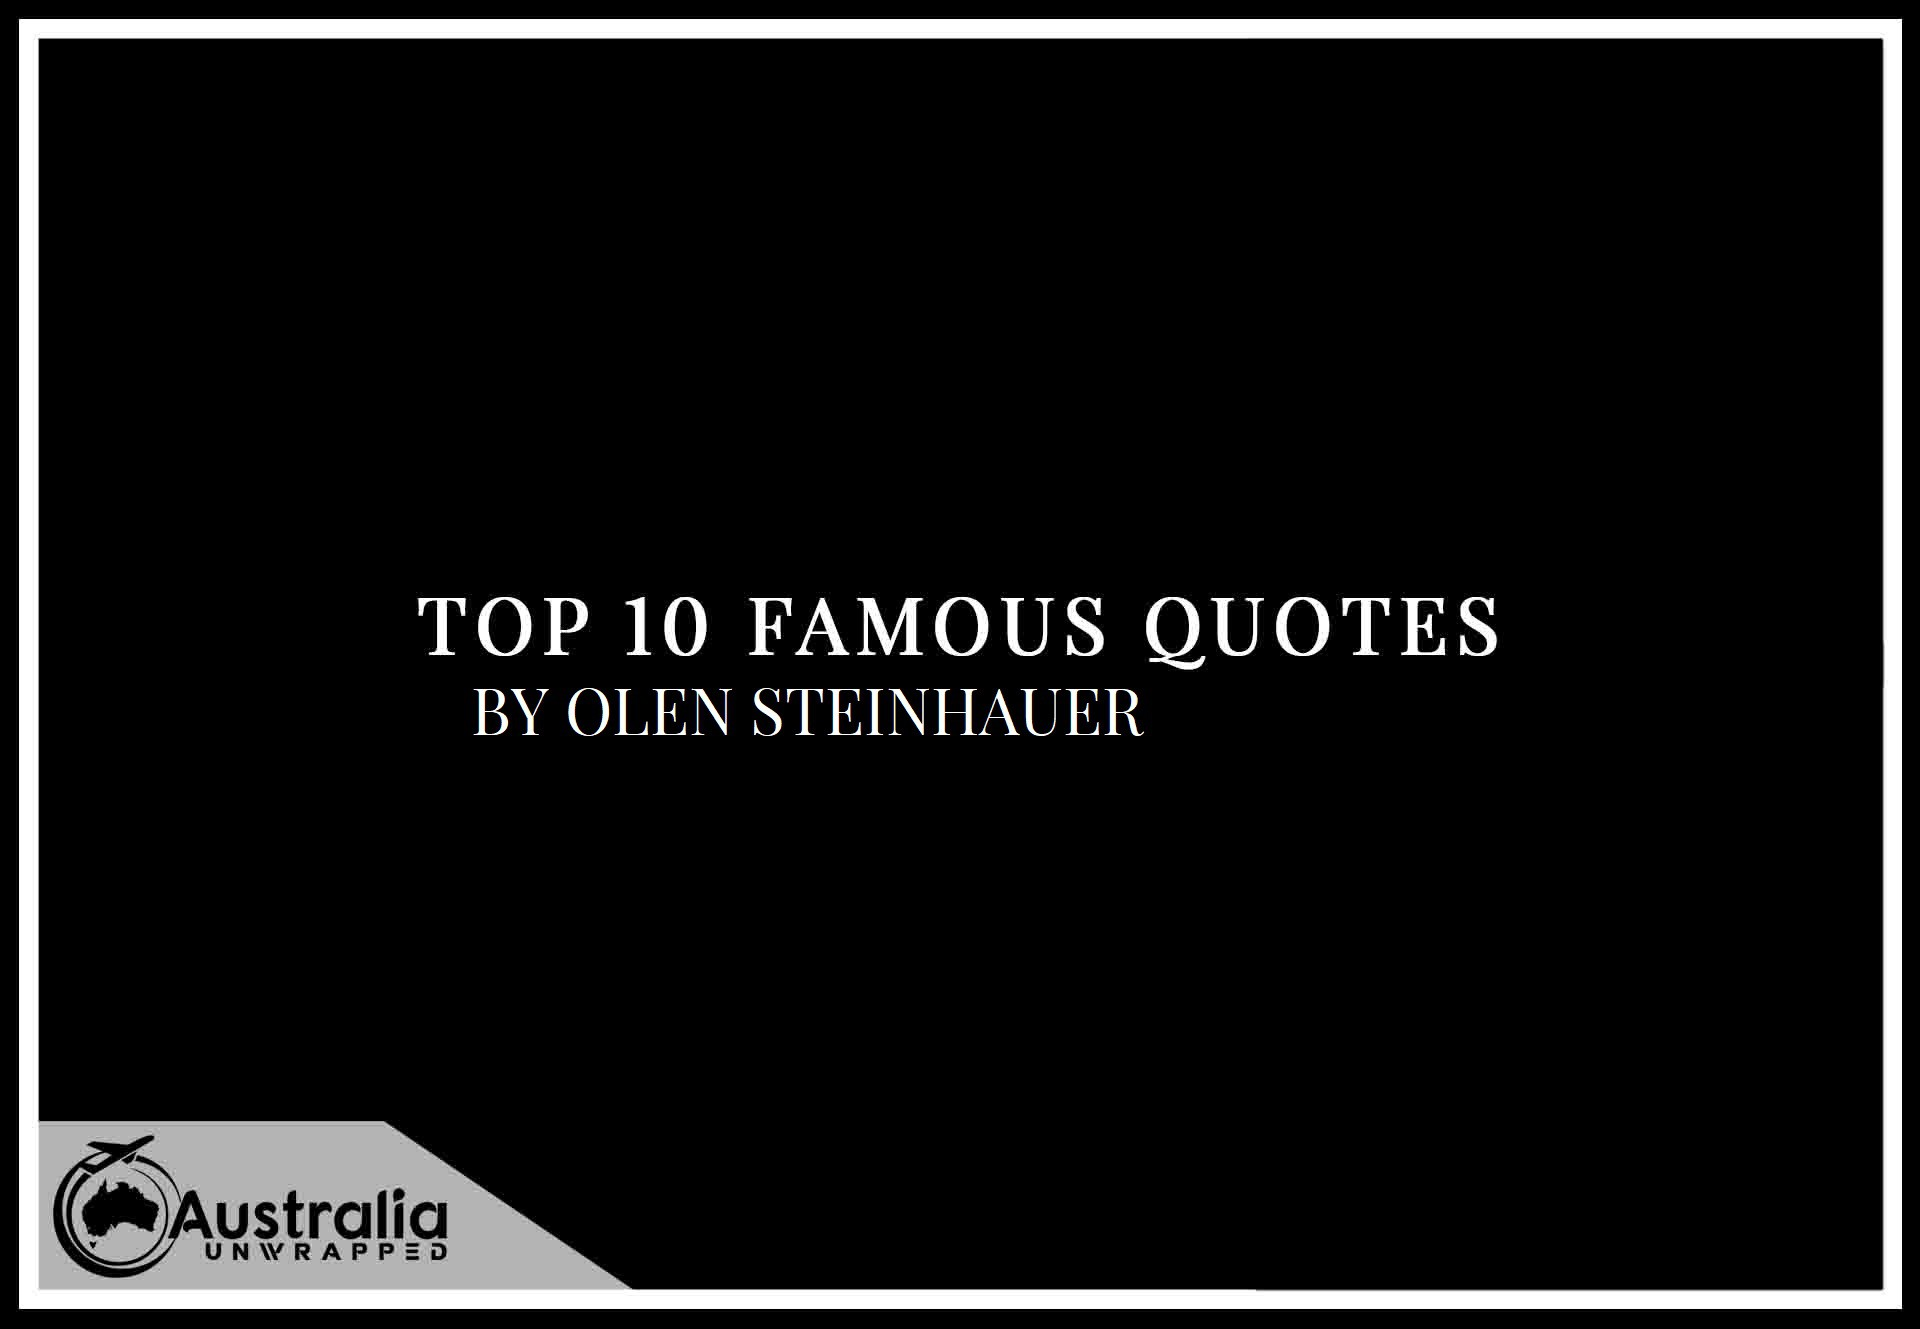 Top 10 Famous Quotes by Author Olen Steinhauer